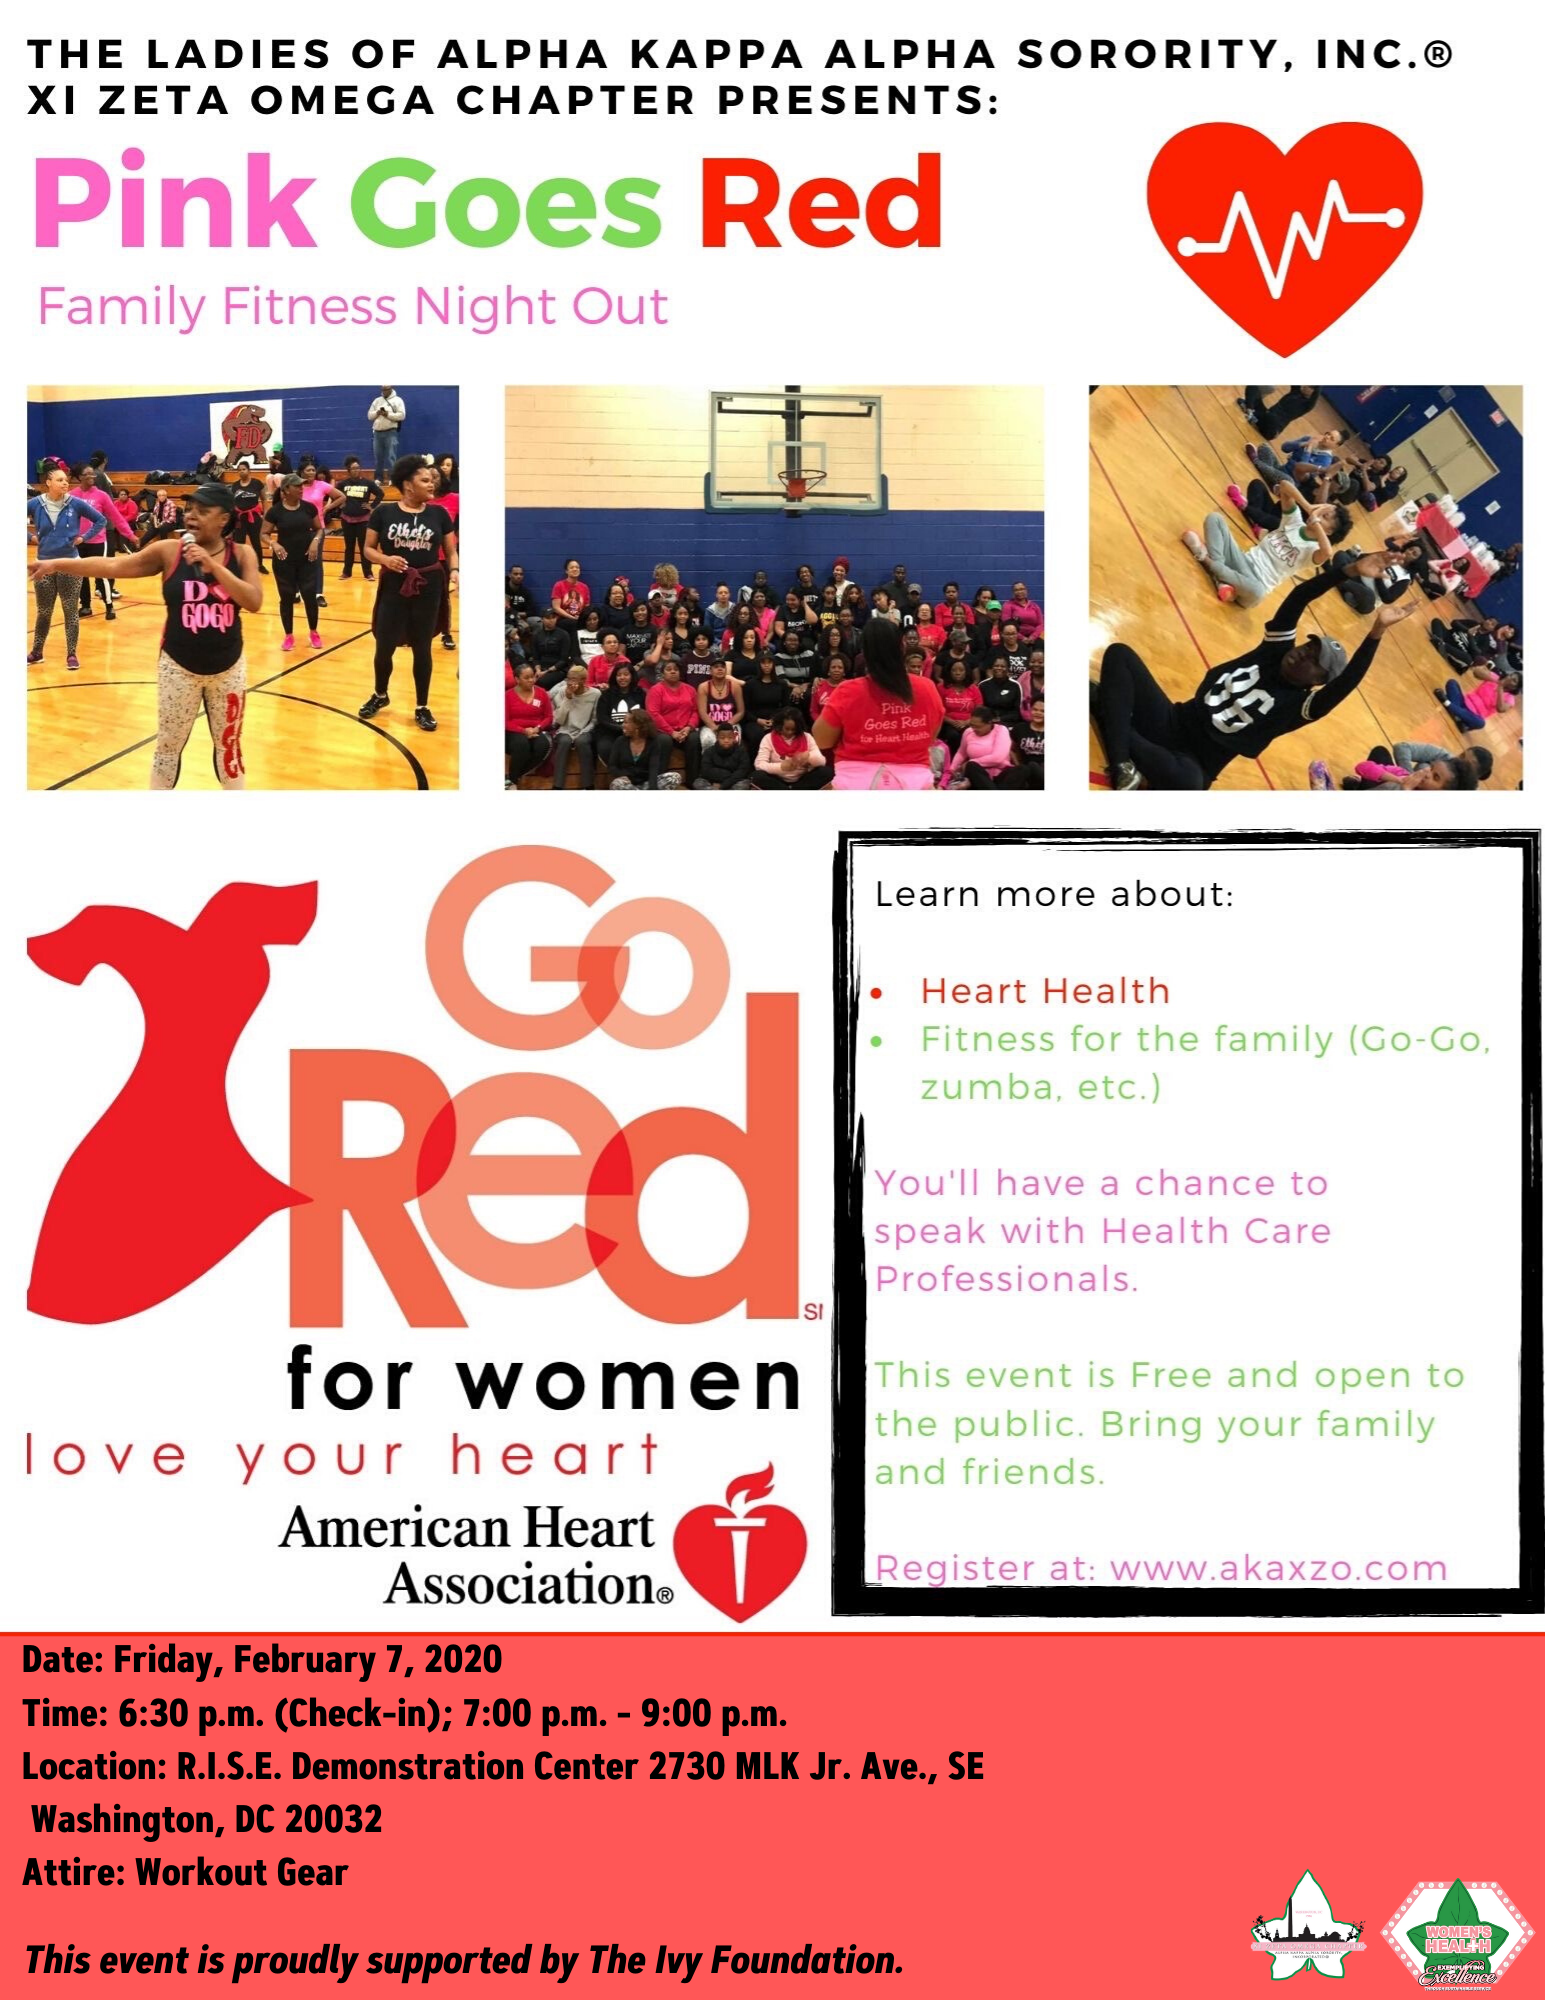 Come and join us for a heart health talk Q&A, fitness demonstrations, and healthy refreshments. All ages are invited to come ready to work-out in athletic gear and start the year off right with a FREE evening of heart health attention!